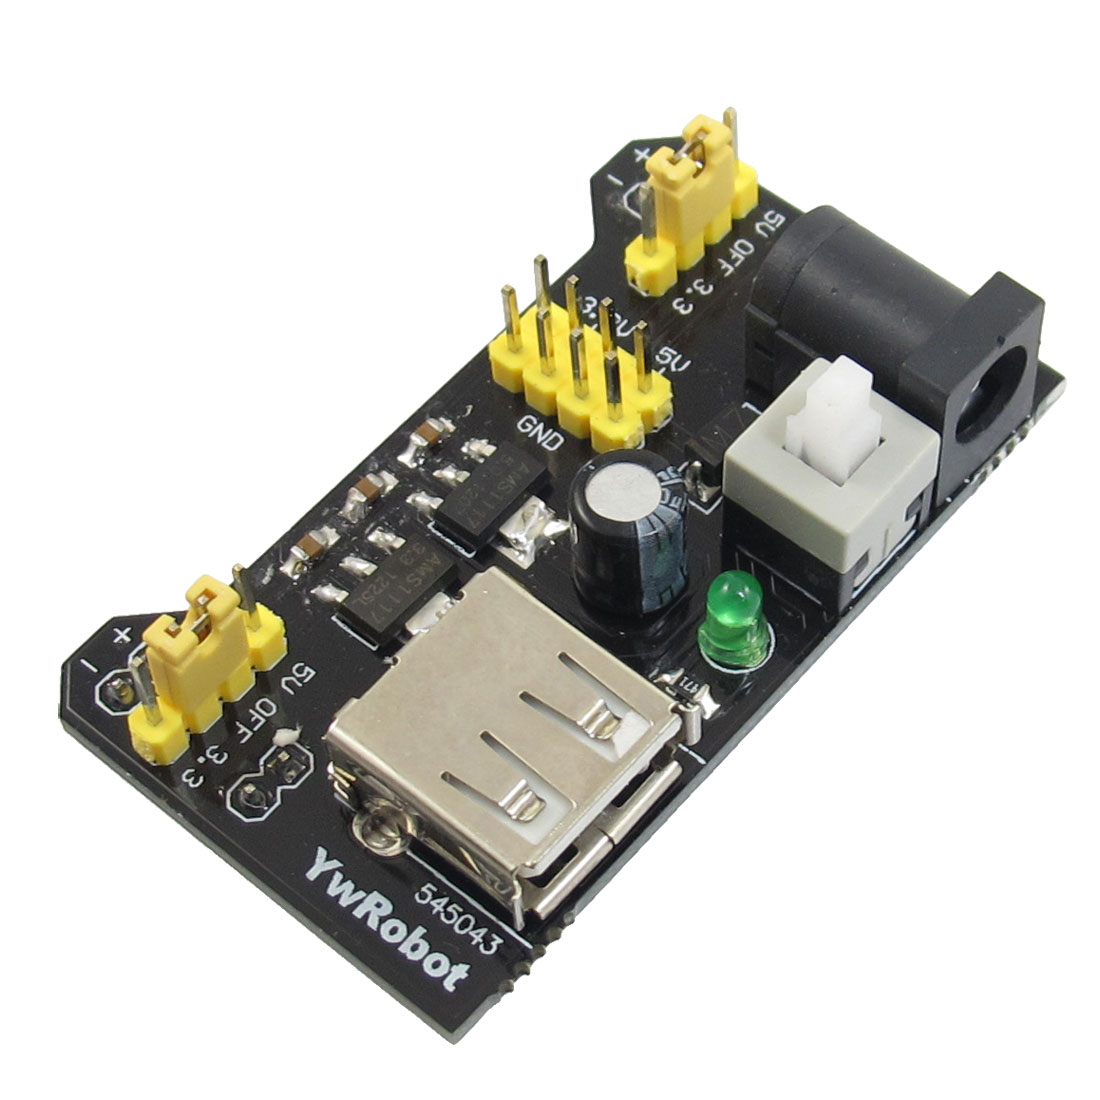 3.3V 5V Breadboard Power Supply Module for MB102 Solderless Breadboard